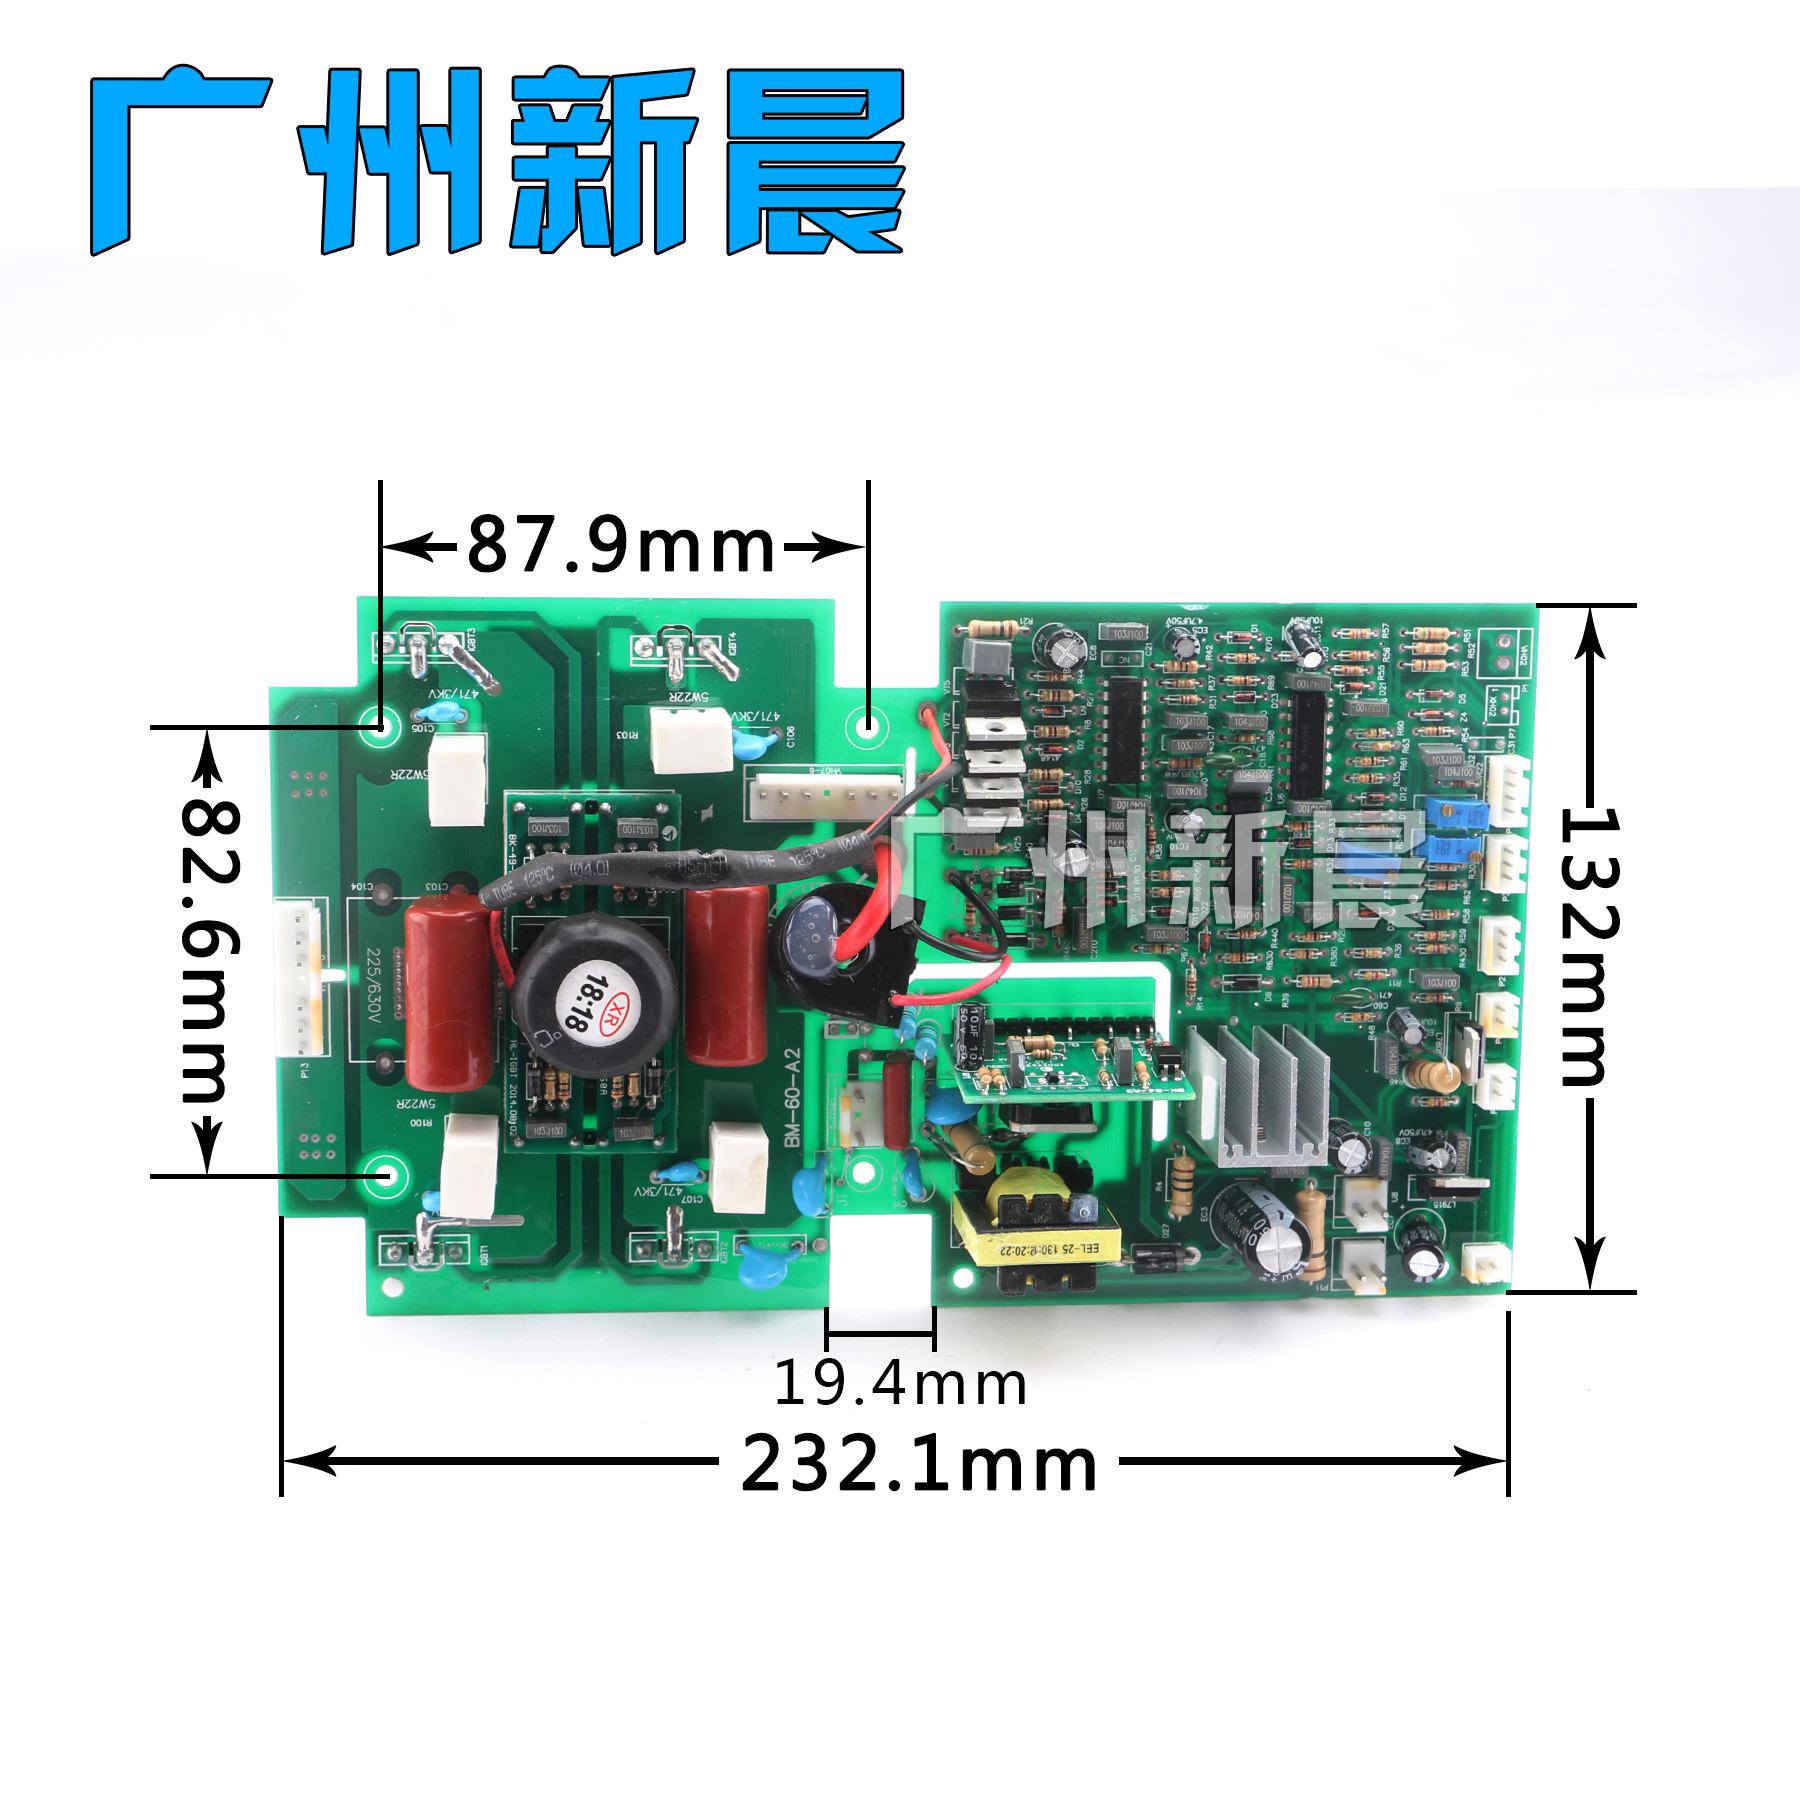 Double-power ZX7-315S universal inverted DC welding machine PCB fittings board board circuit board